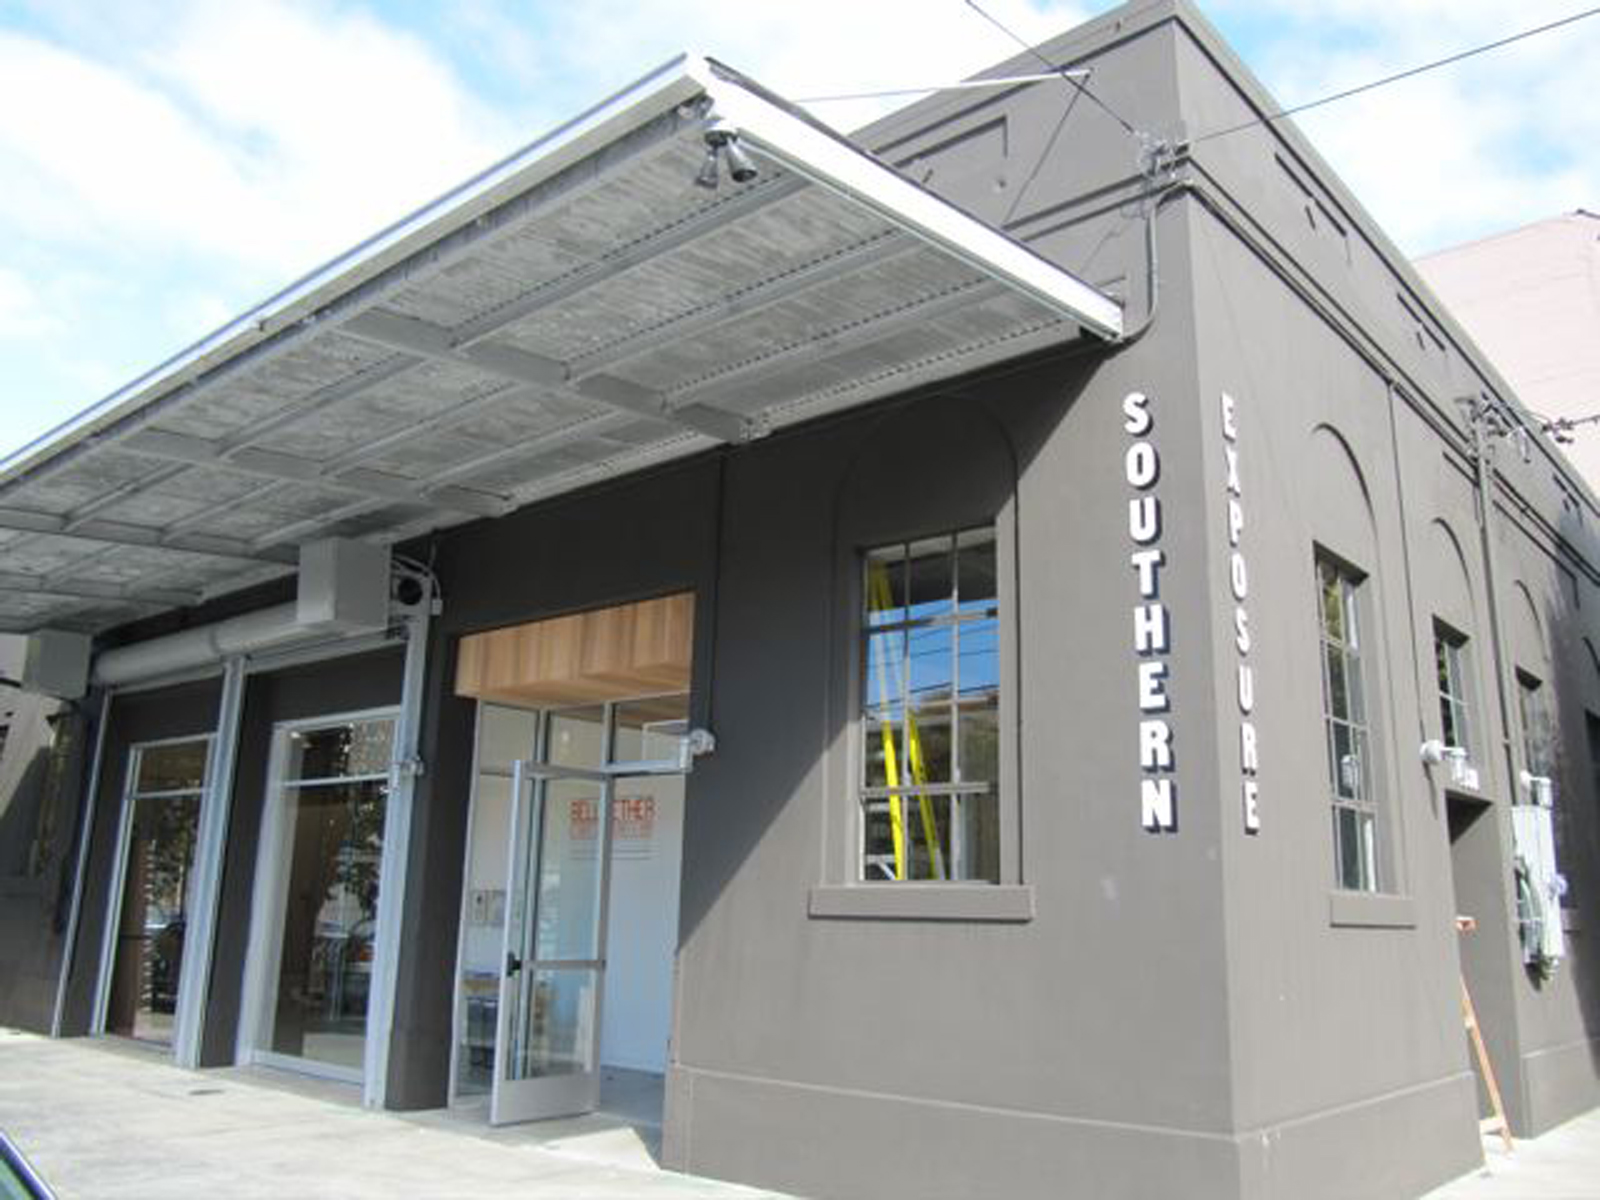 Southern Exposure's New Home